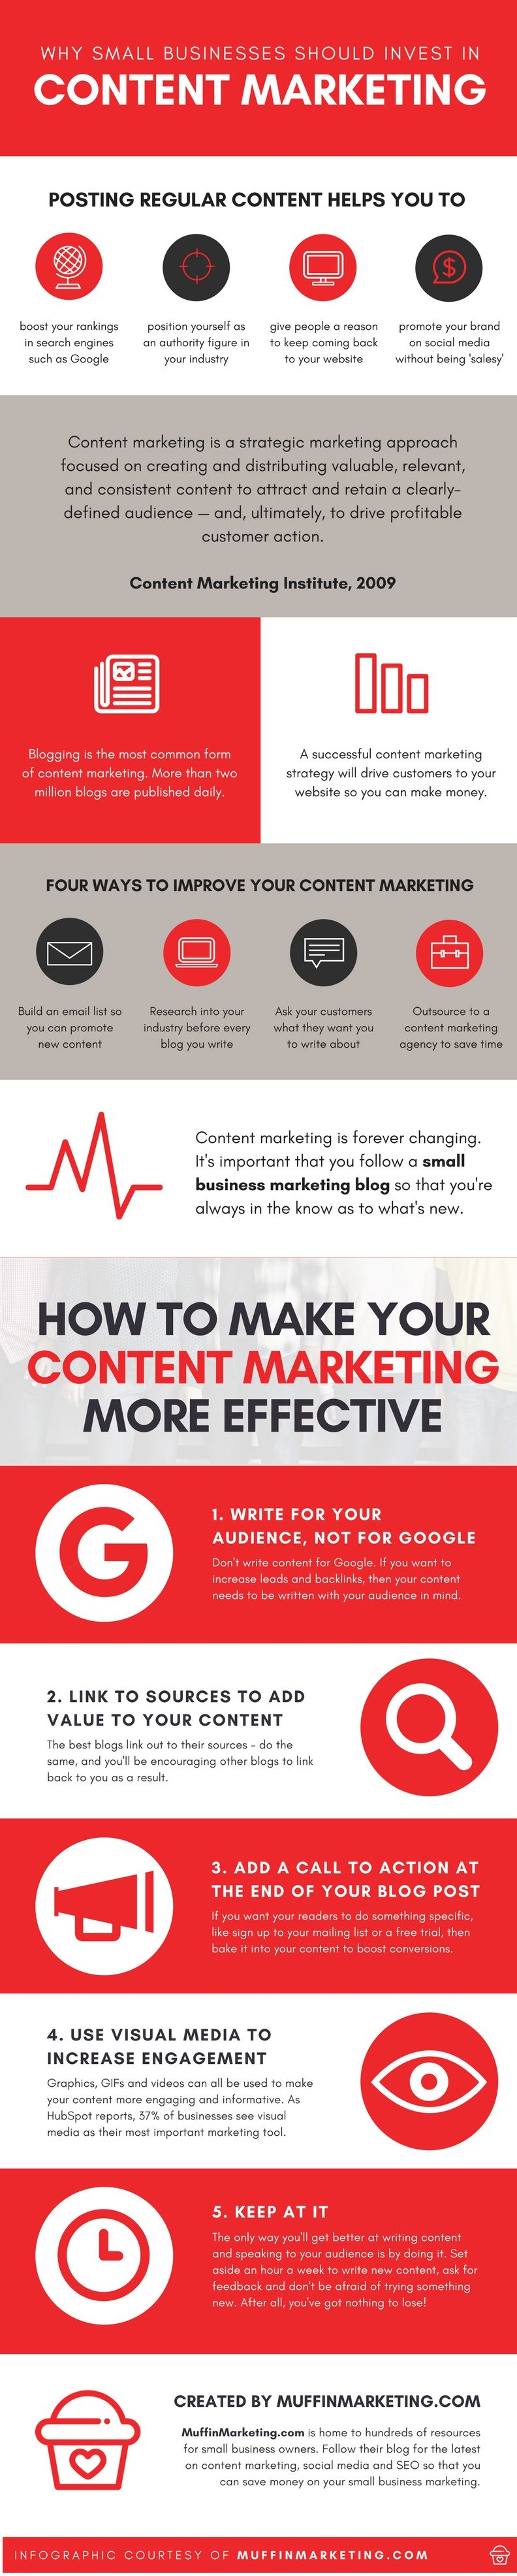 4 Reasons to Invest in Content Marketing, and How to Create an Effective Strategy [Infographic]